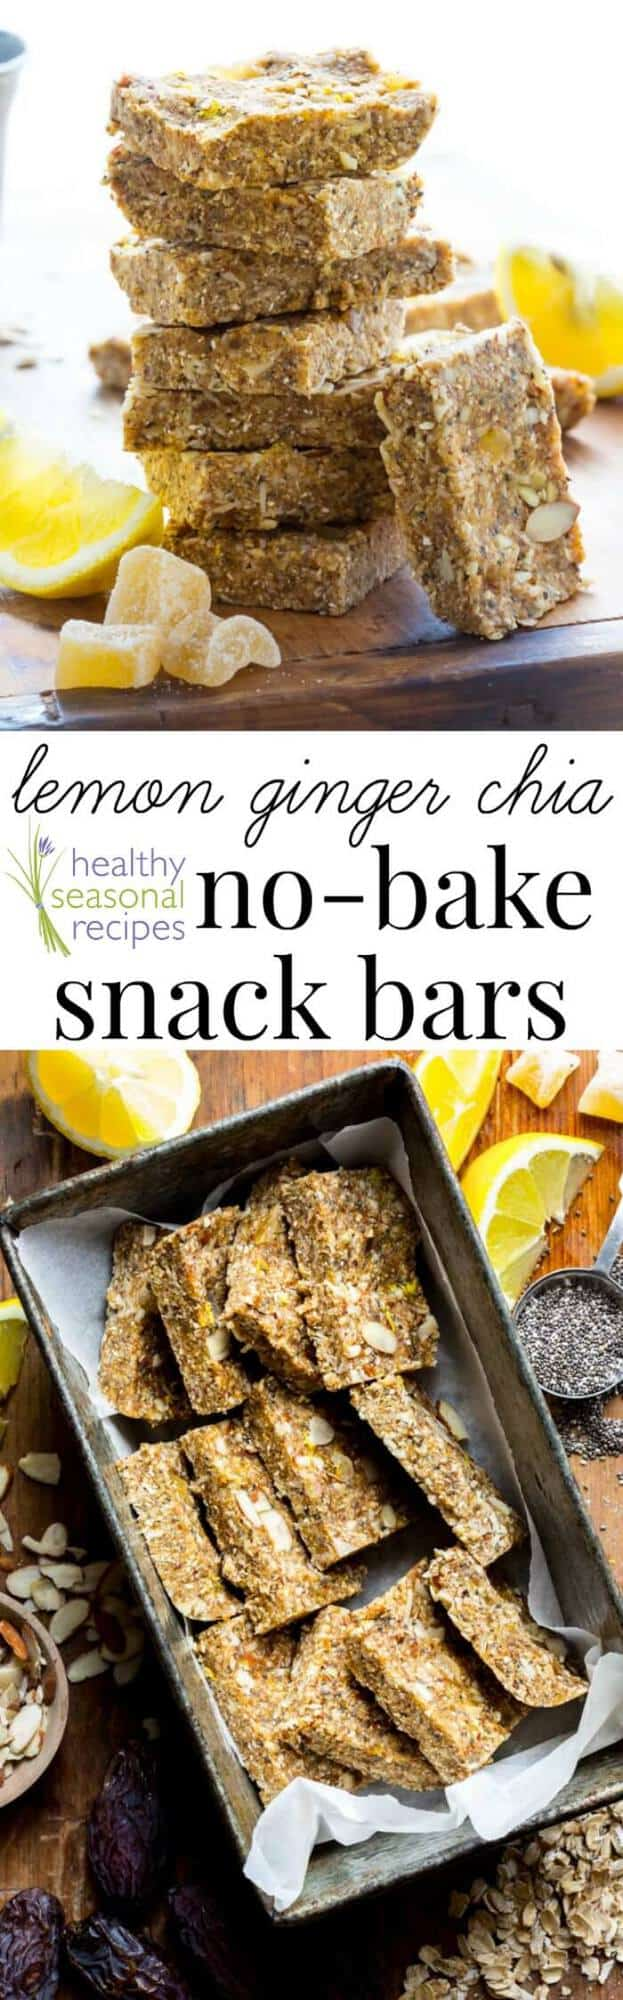 Lemon chia bar photo collage  with text overlay